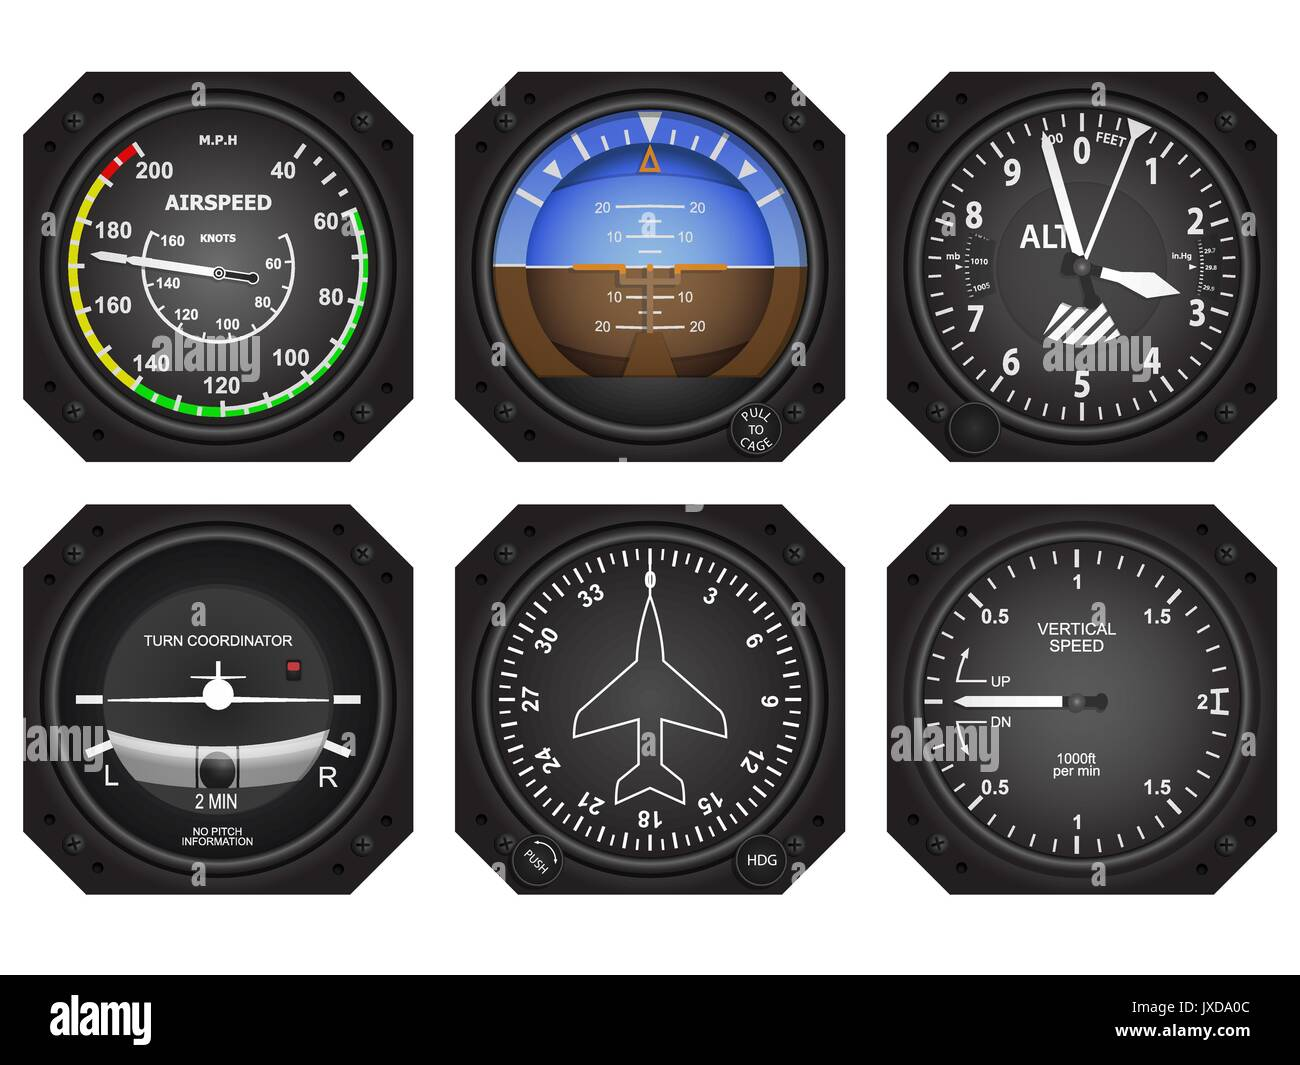 Set of six aircraft avionics instruments. Eps 10 vector illustration - Stock Image